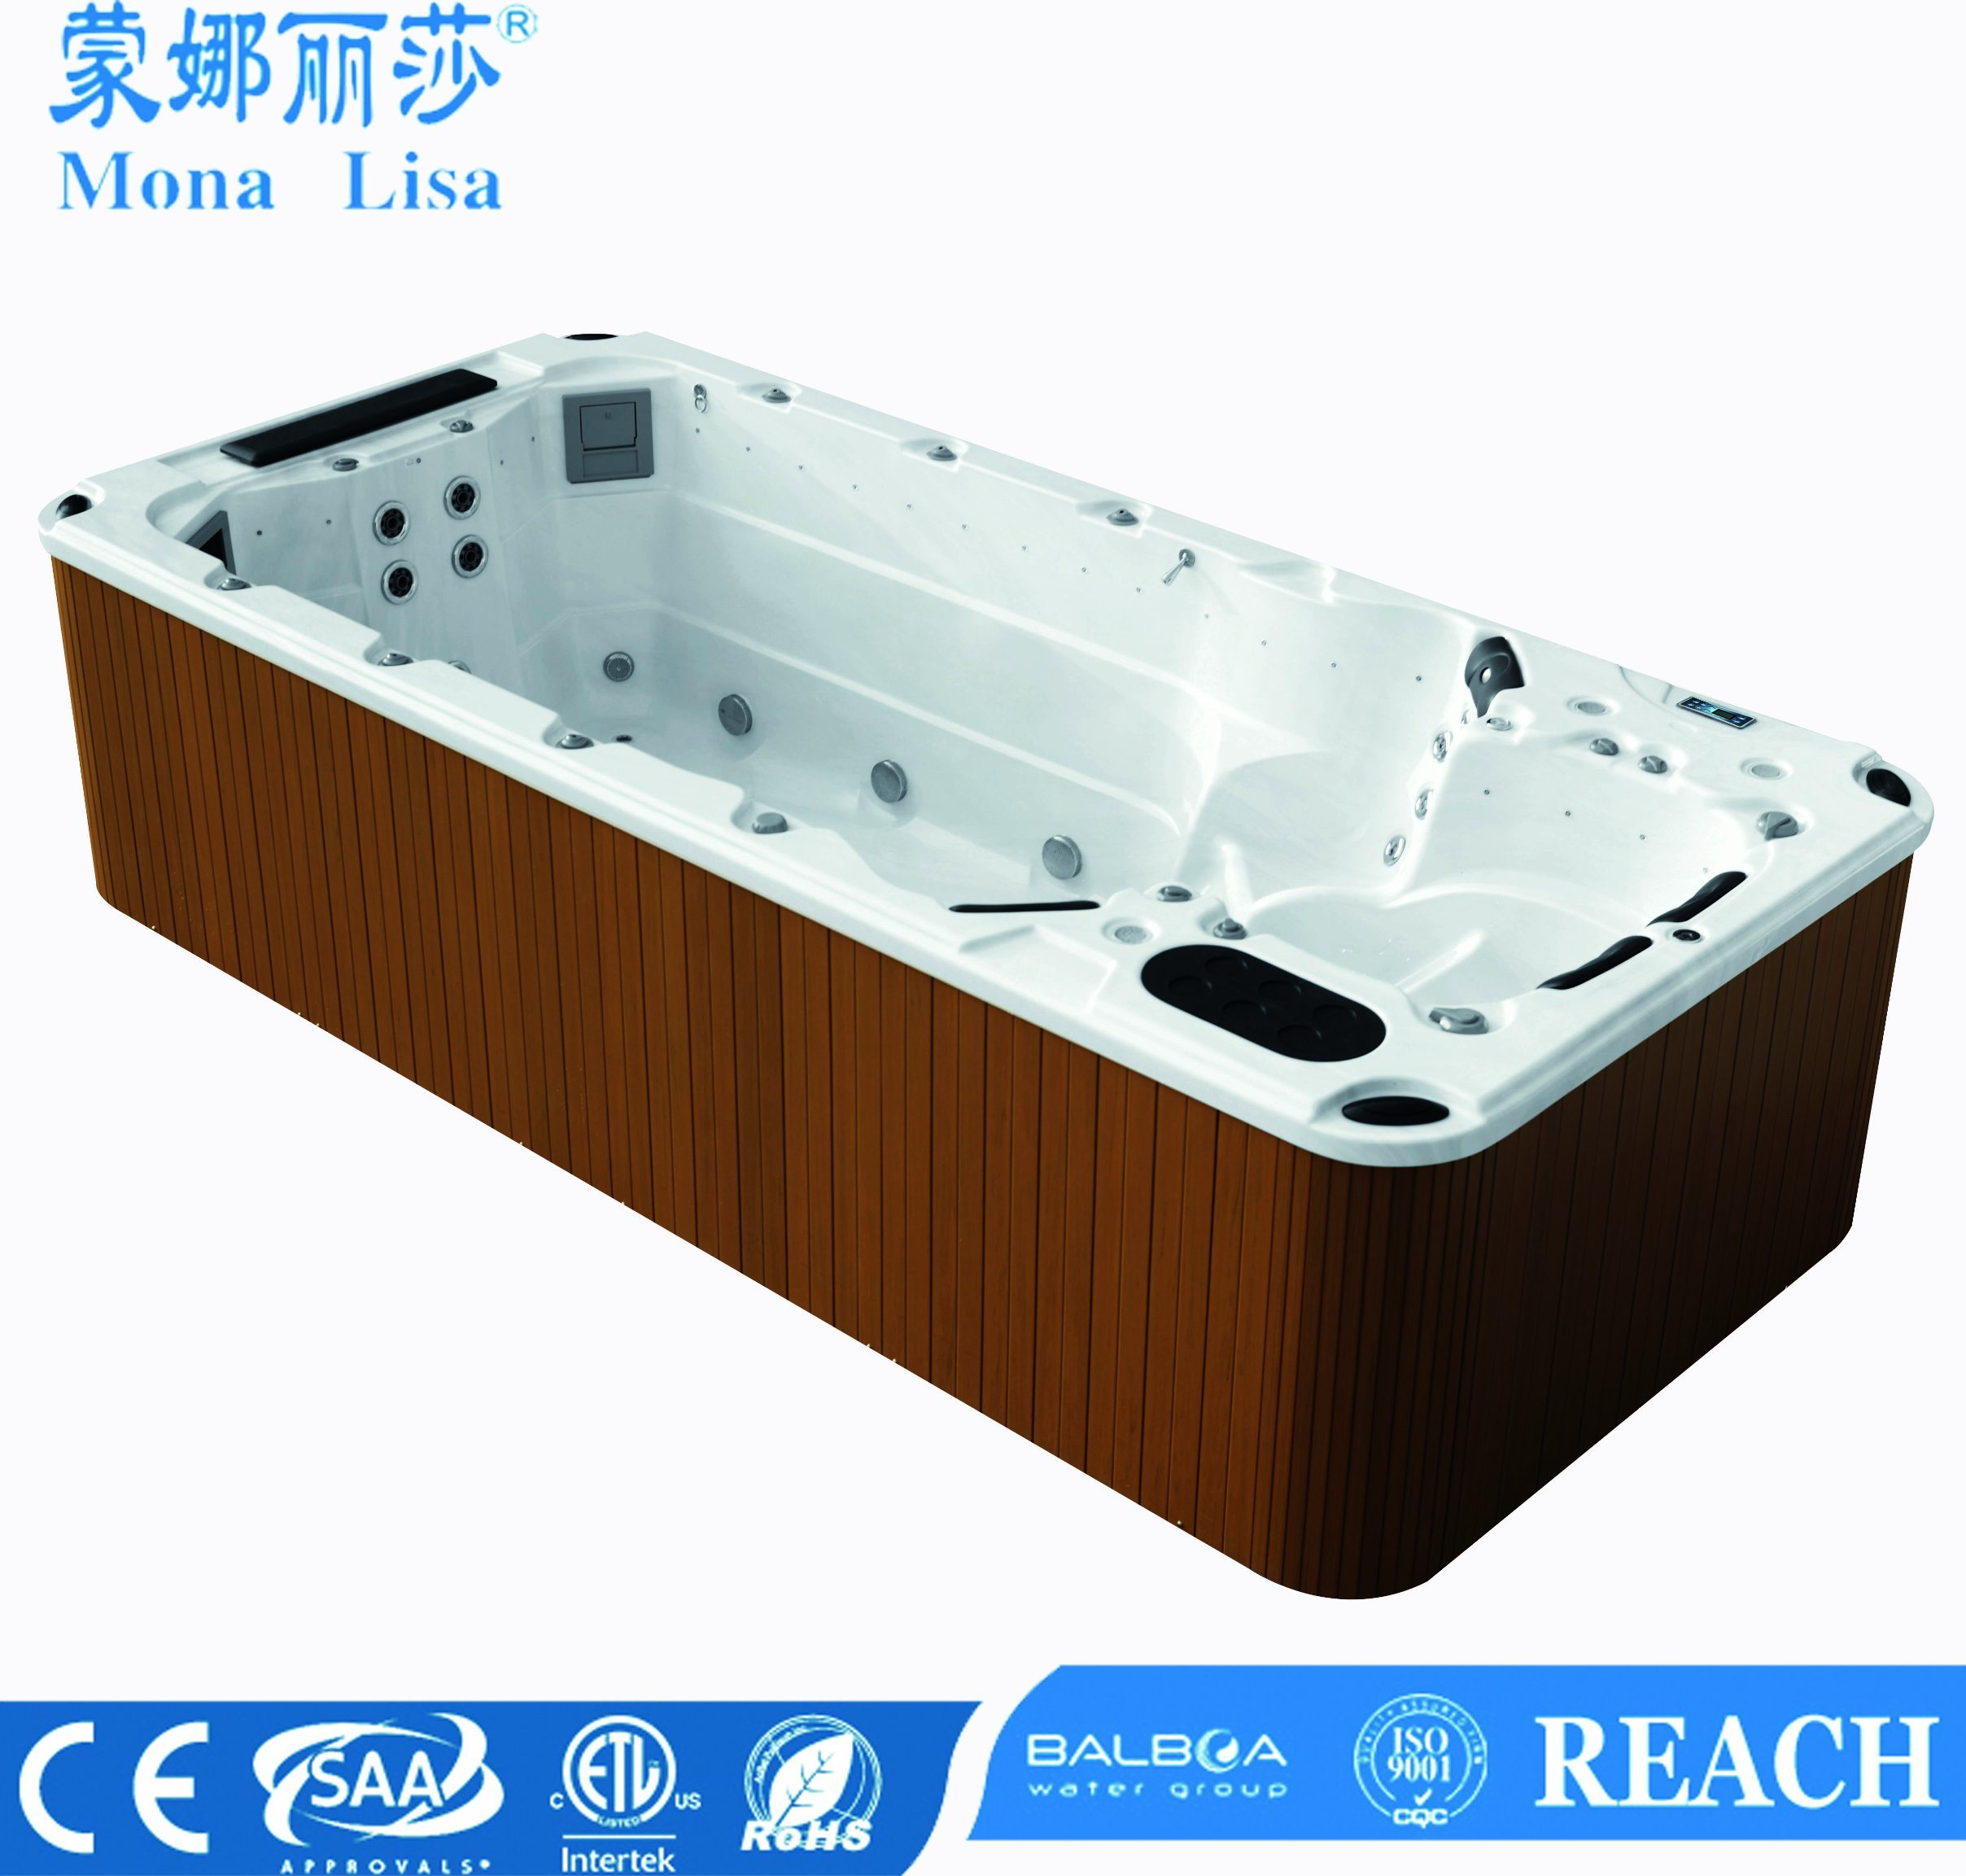 Whirlpool Outdoor Swim Spa Hot Item Special Design Whirlpool Massage Swim Spa Swimming Pool M 3370